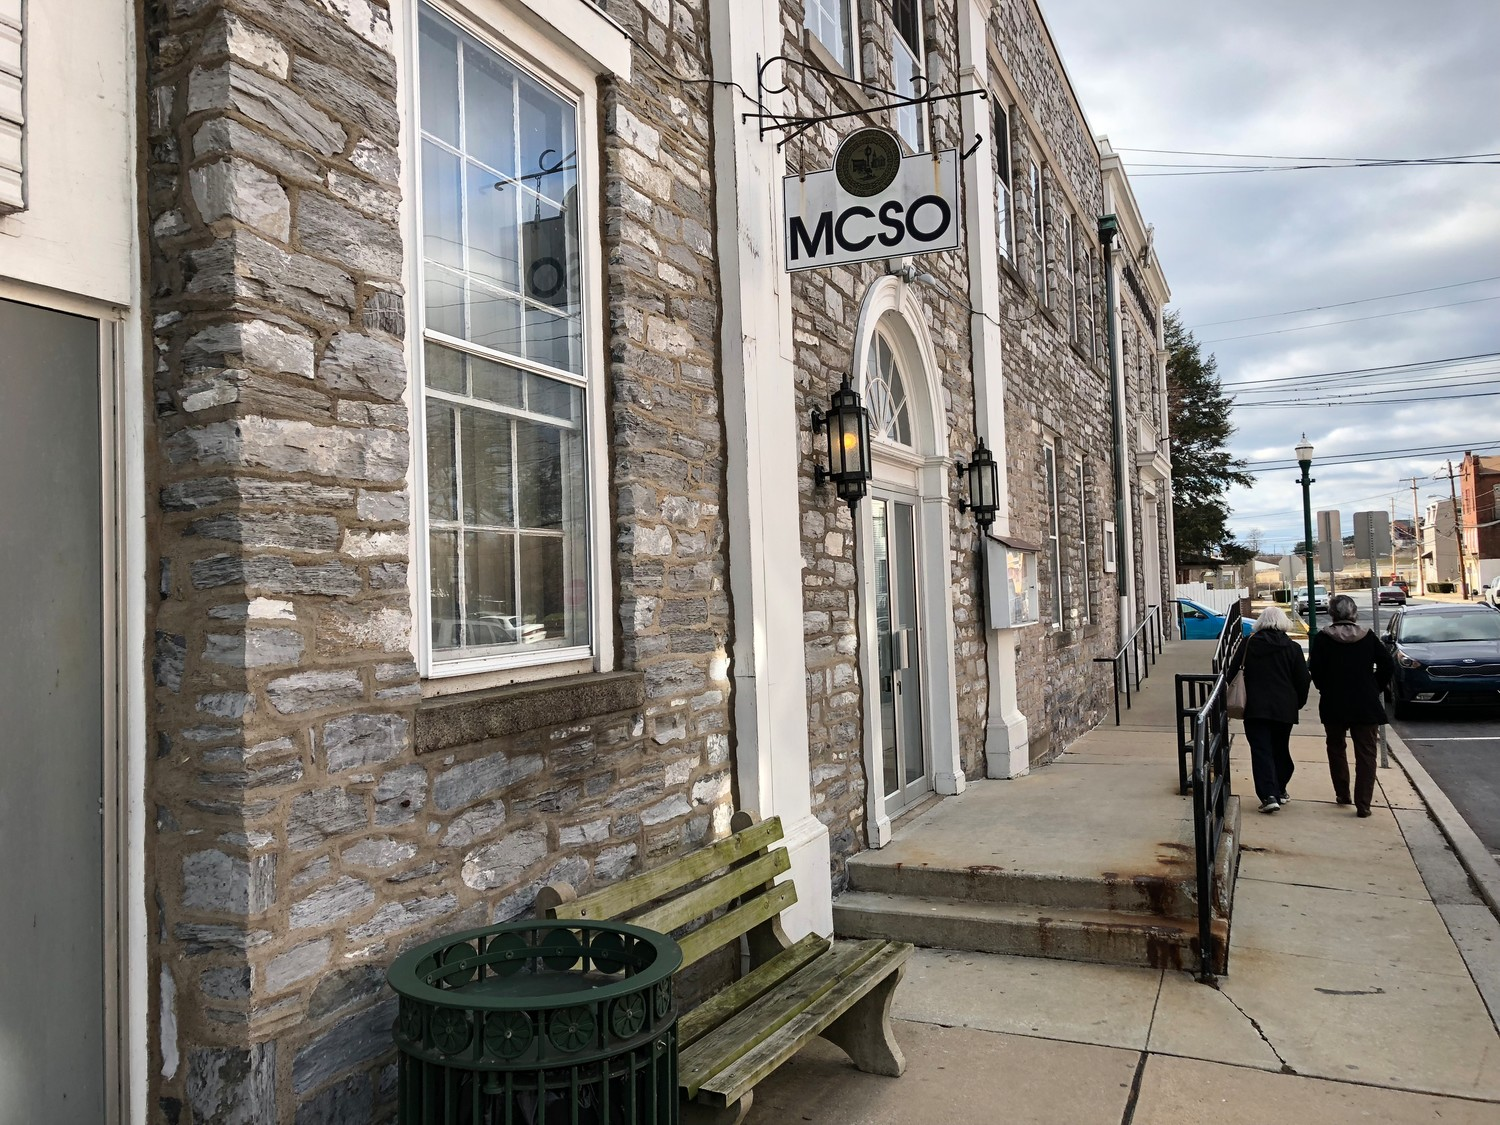 The MCSO will be the location for Middletown Borough Council meetings.